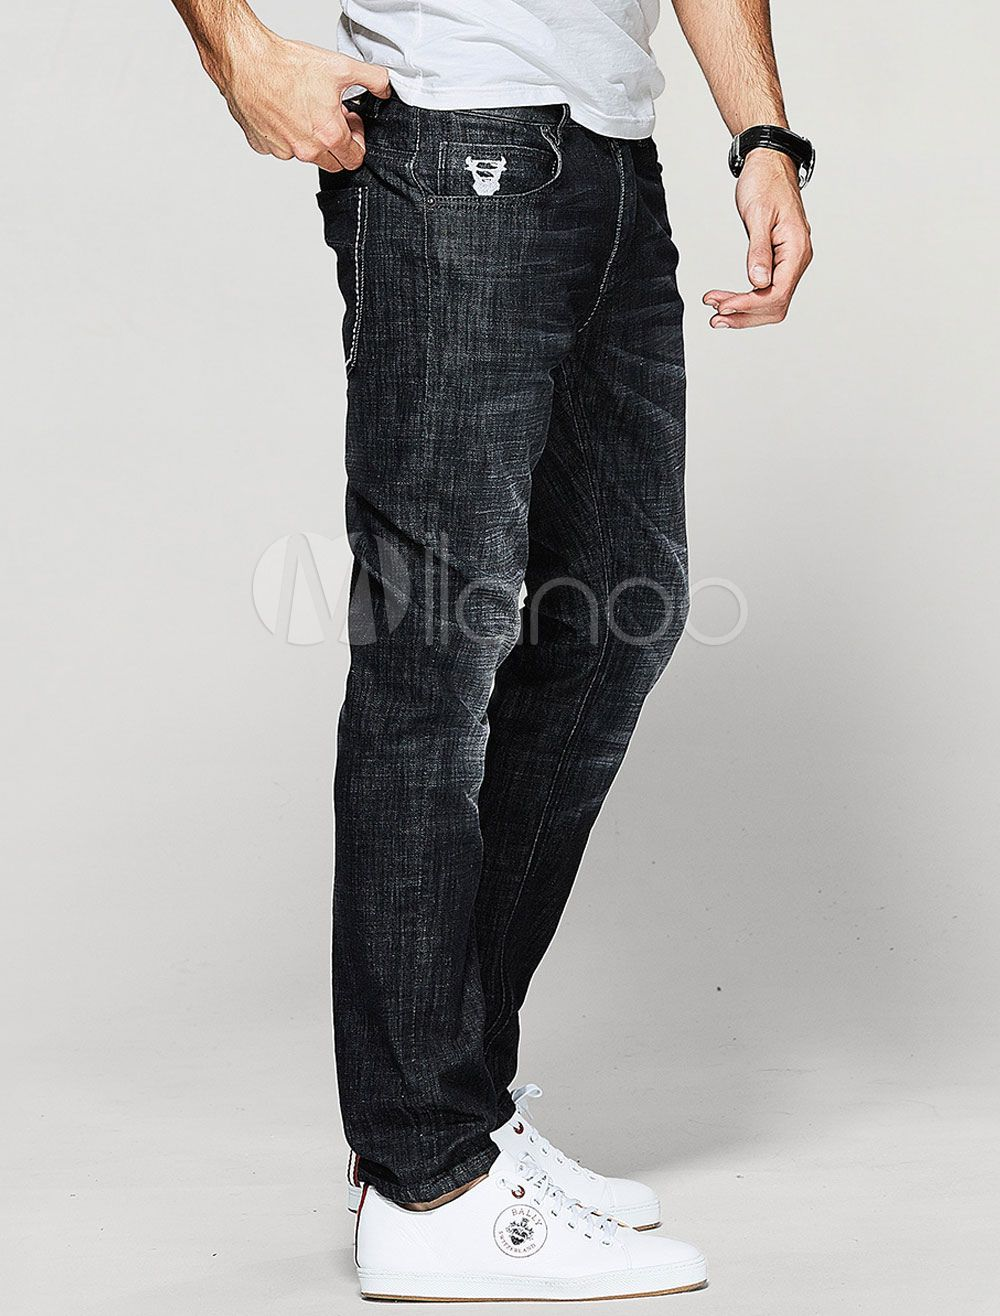 Men's Black Jeans Wash Distressed Straight Leg Casual Denim Pants